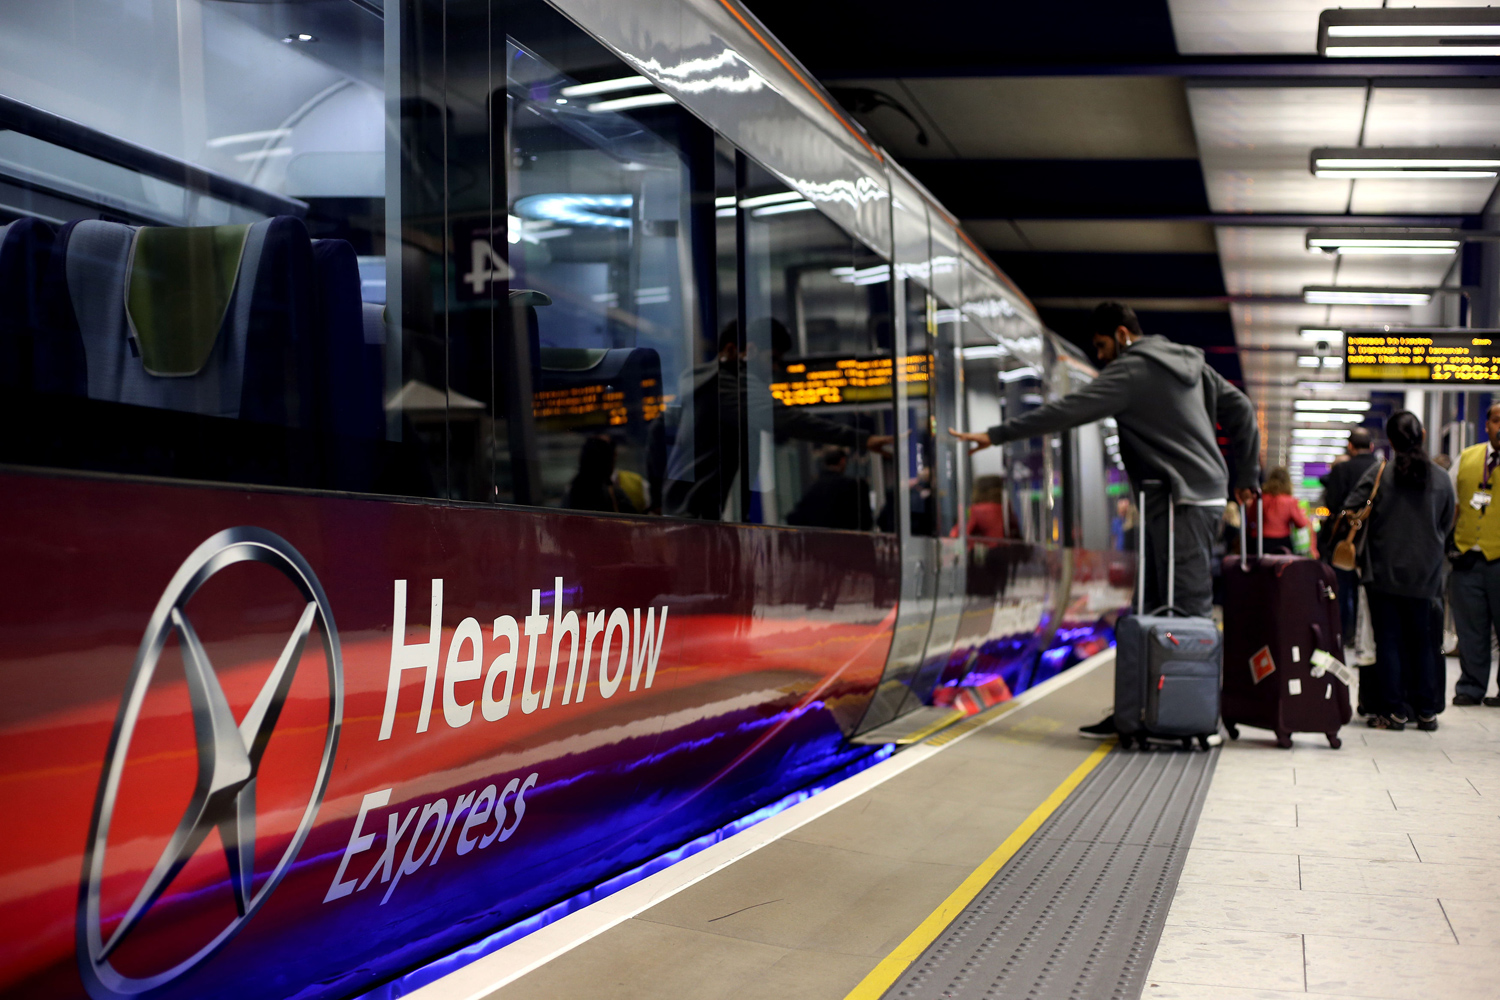 Heathrow Express Rail Tickets from Rail Tour Guide, Your Global ...